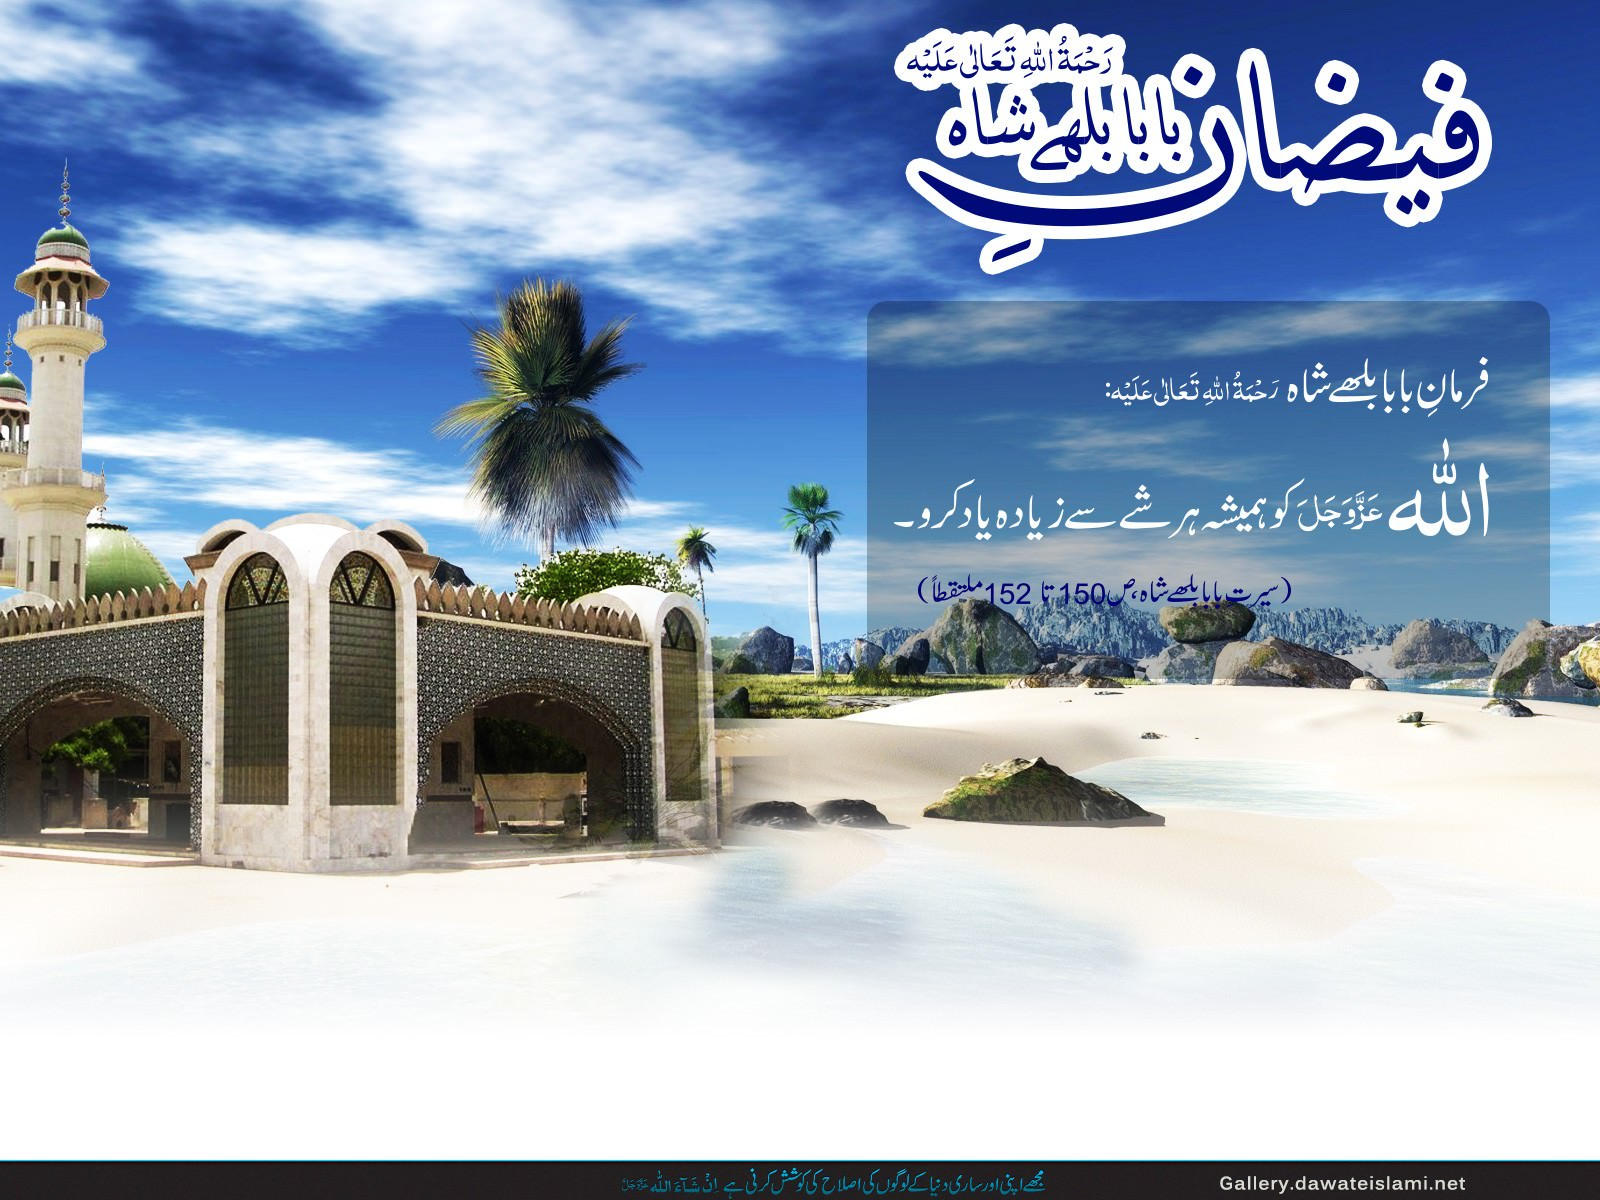 Allah ko hamesha har shay say ziyada yaad kro- Safar Wallpaper